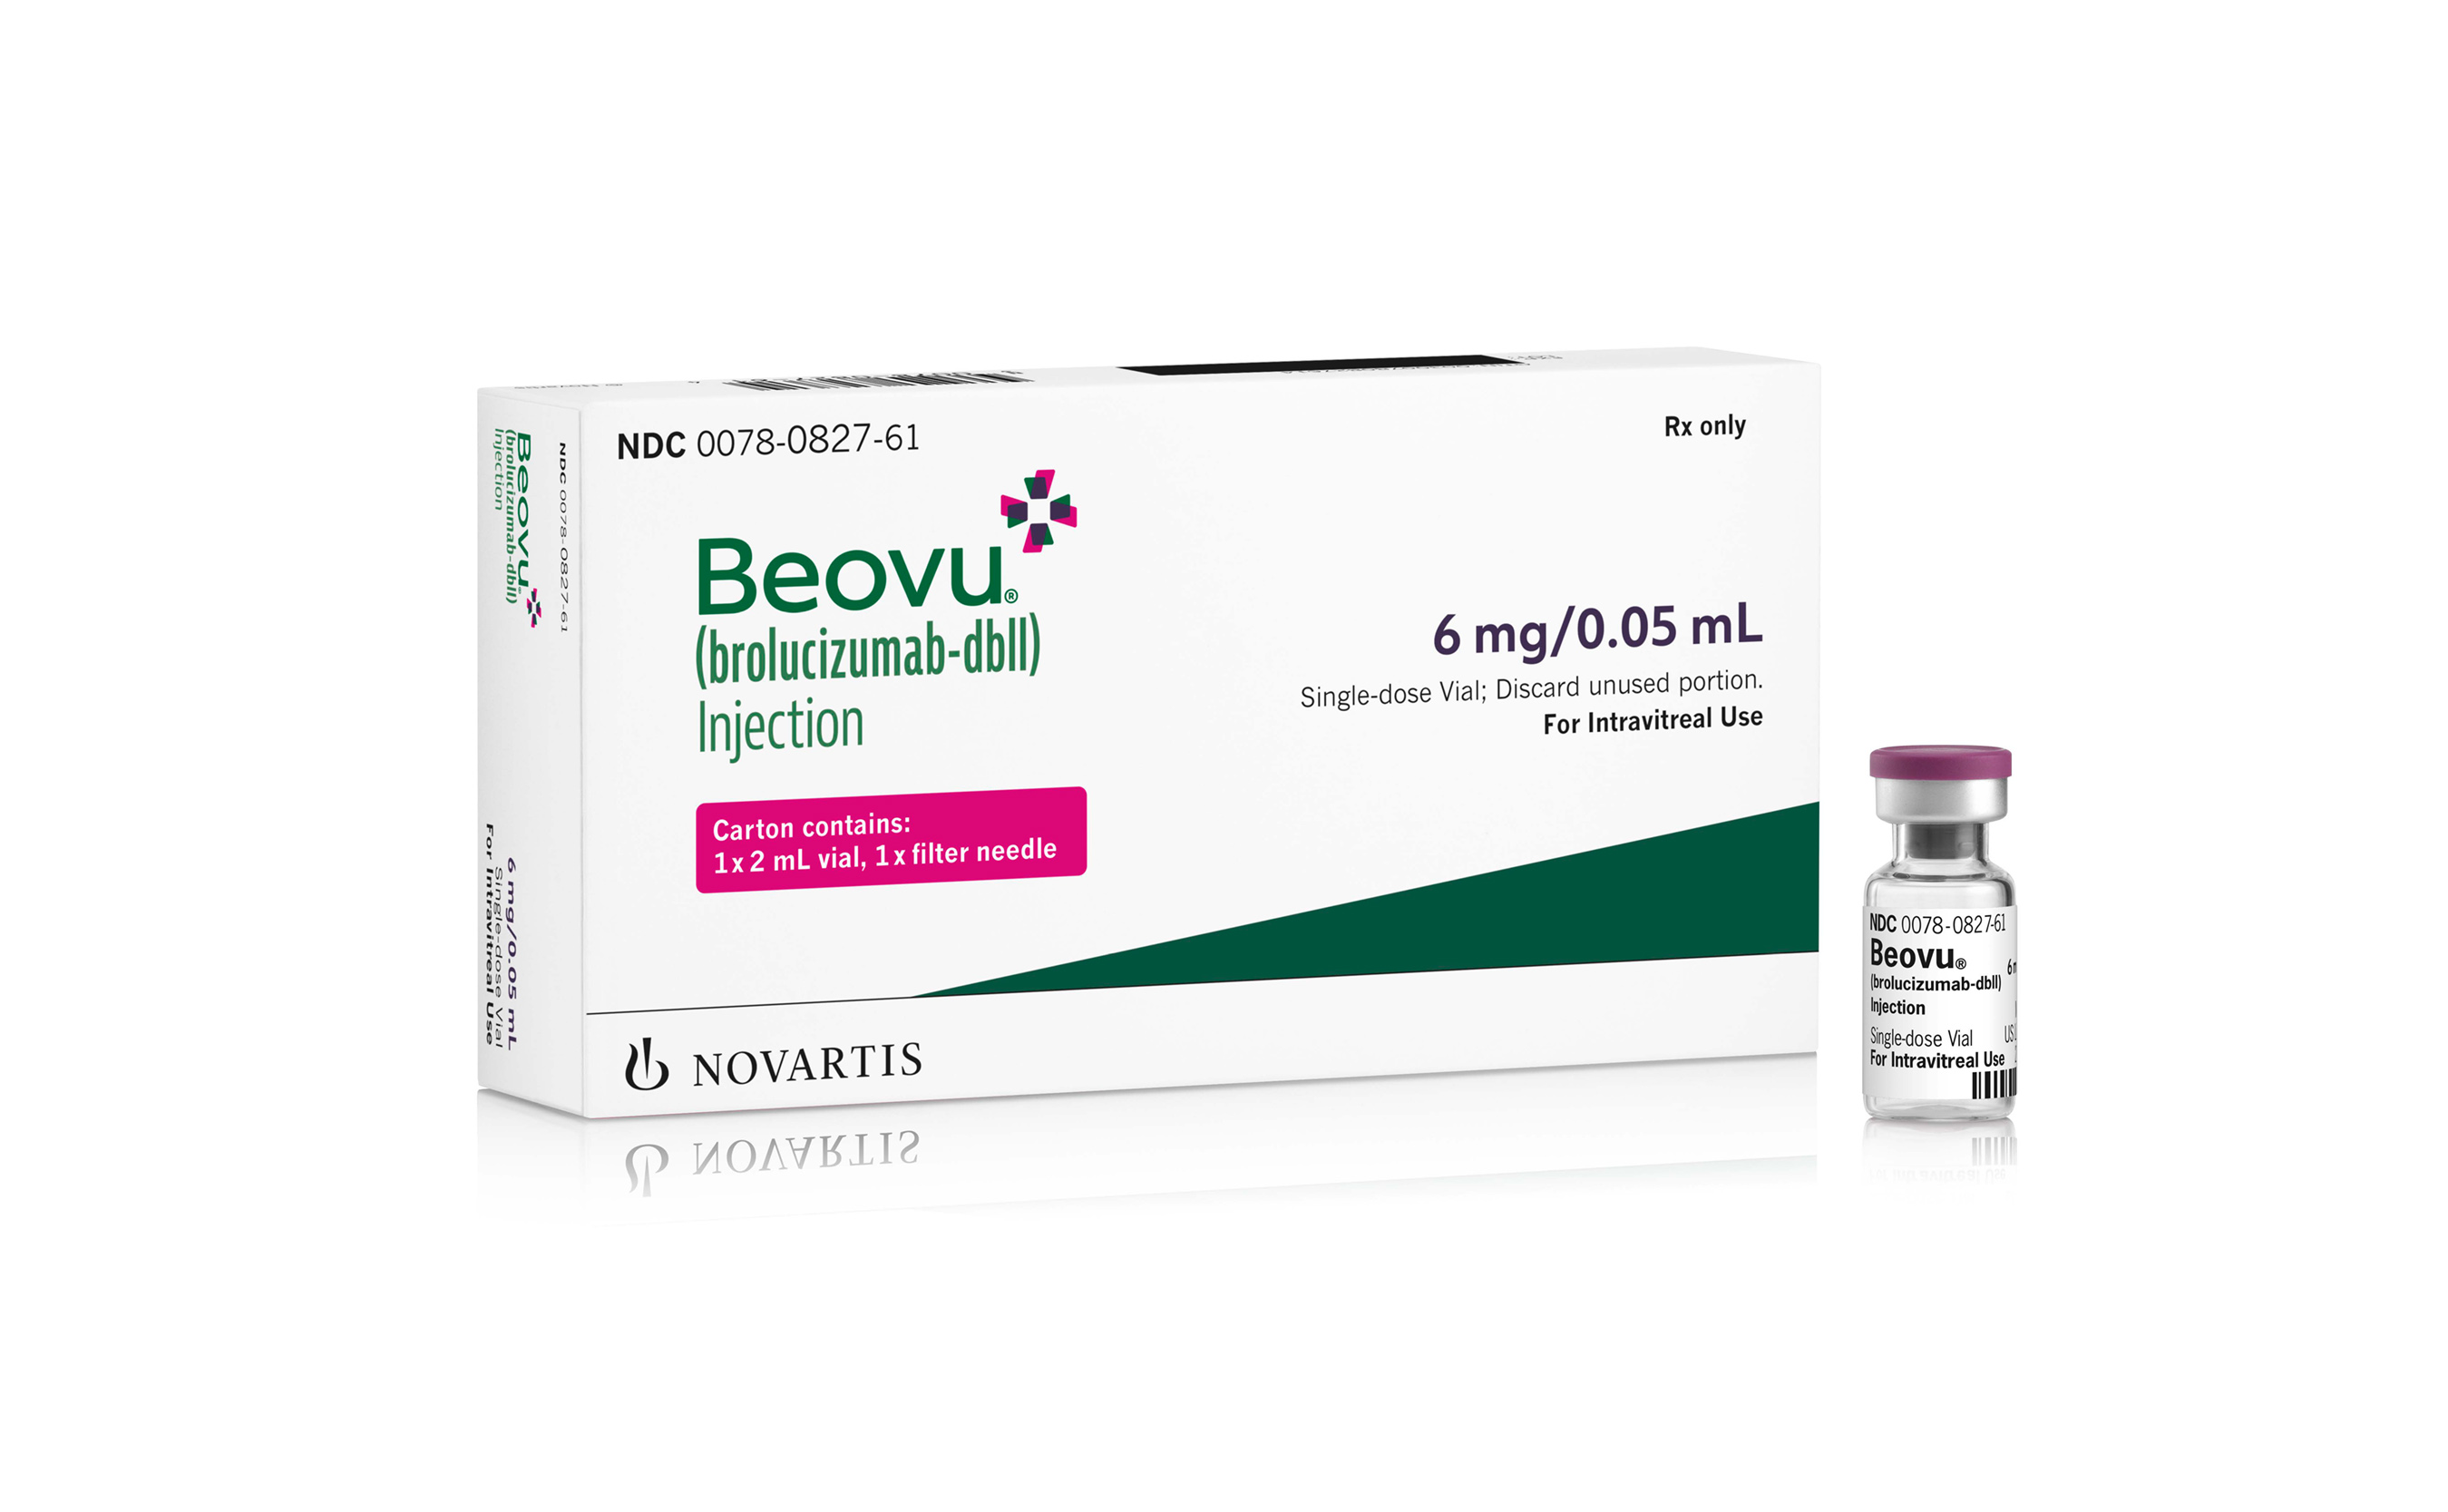 Beovu packaging